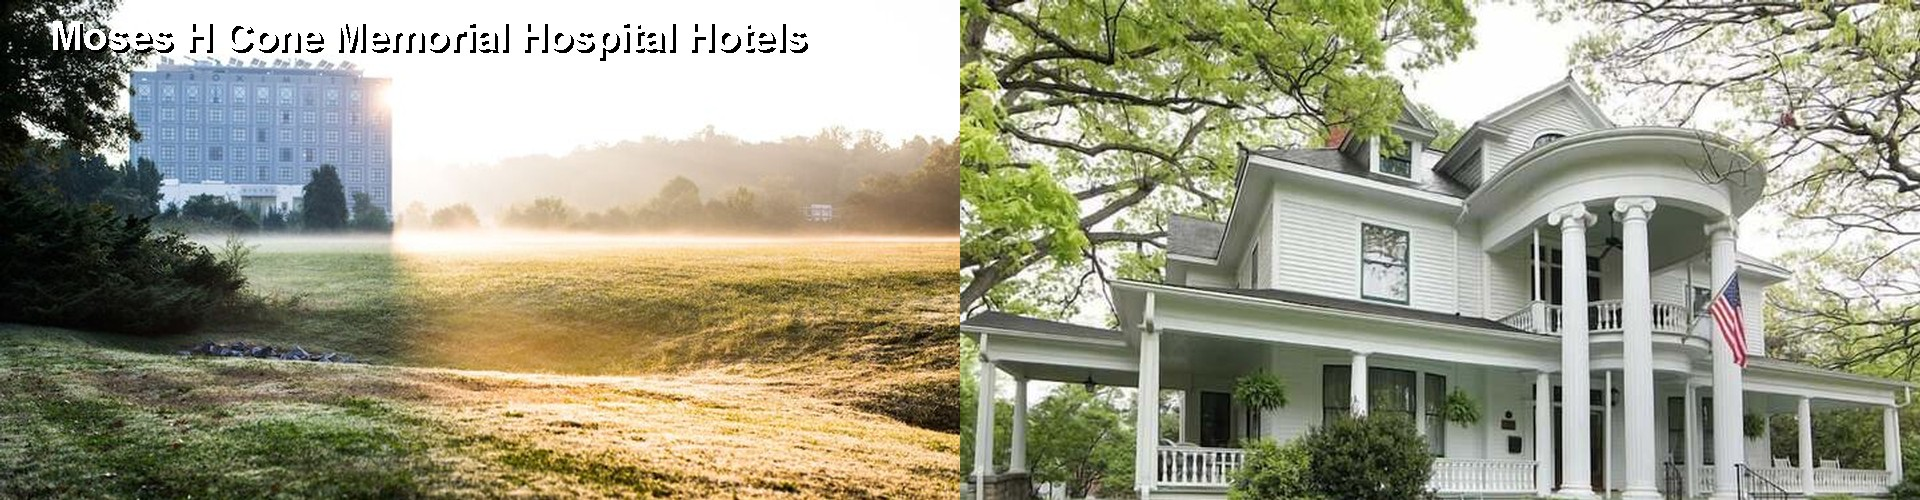 Hotels Near Moses Cone Hospital In Greensboro Nc